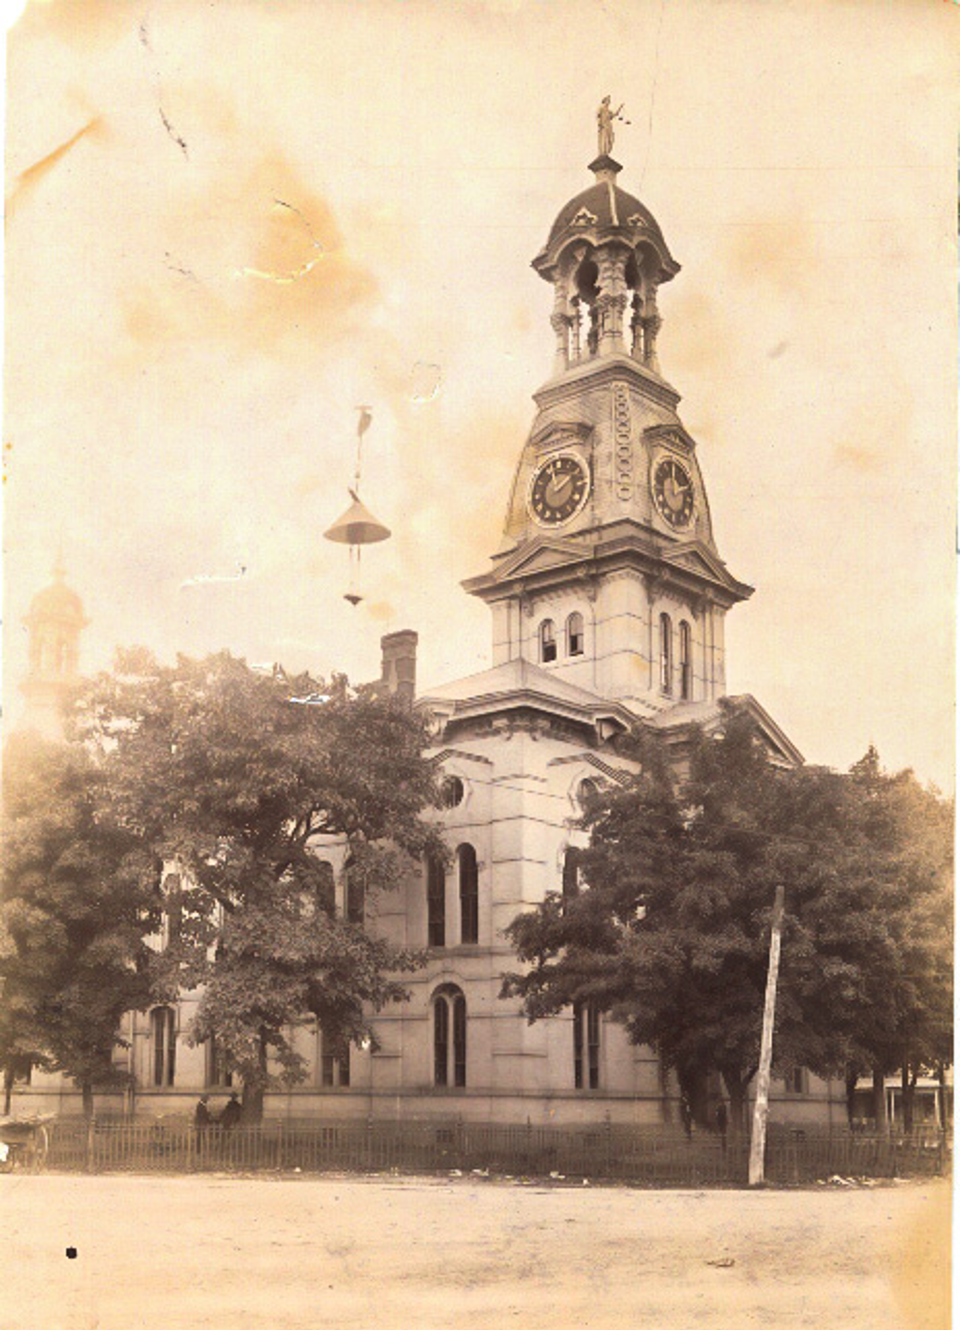 Photograph, Fayette County Courthouse, late 1800s to early 1900s, courtesy of the Tennessee State Library & Archives